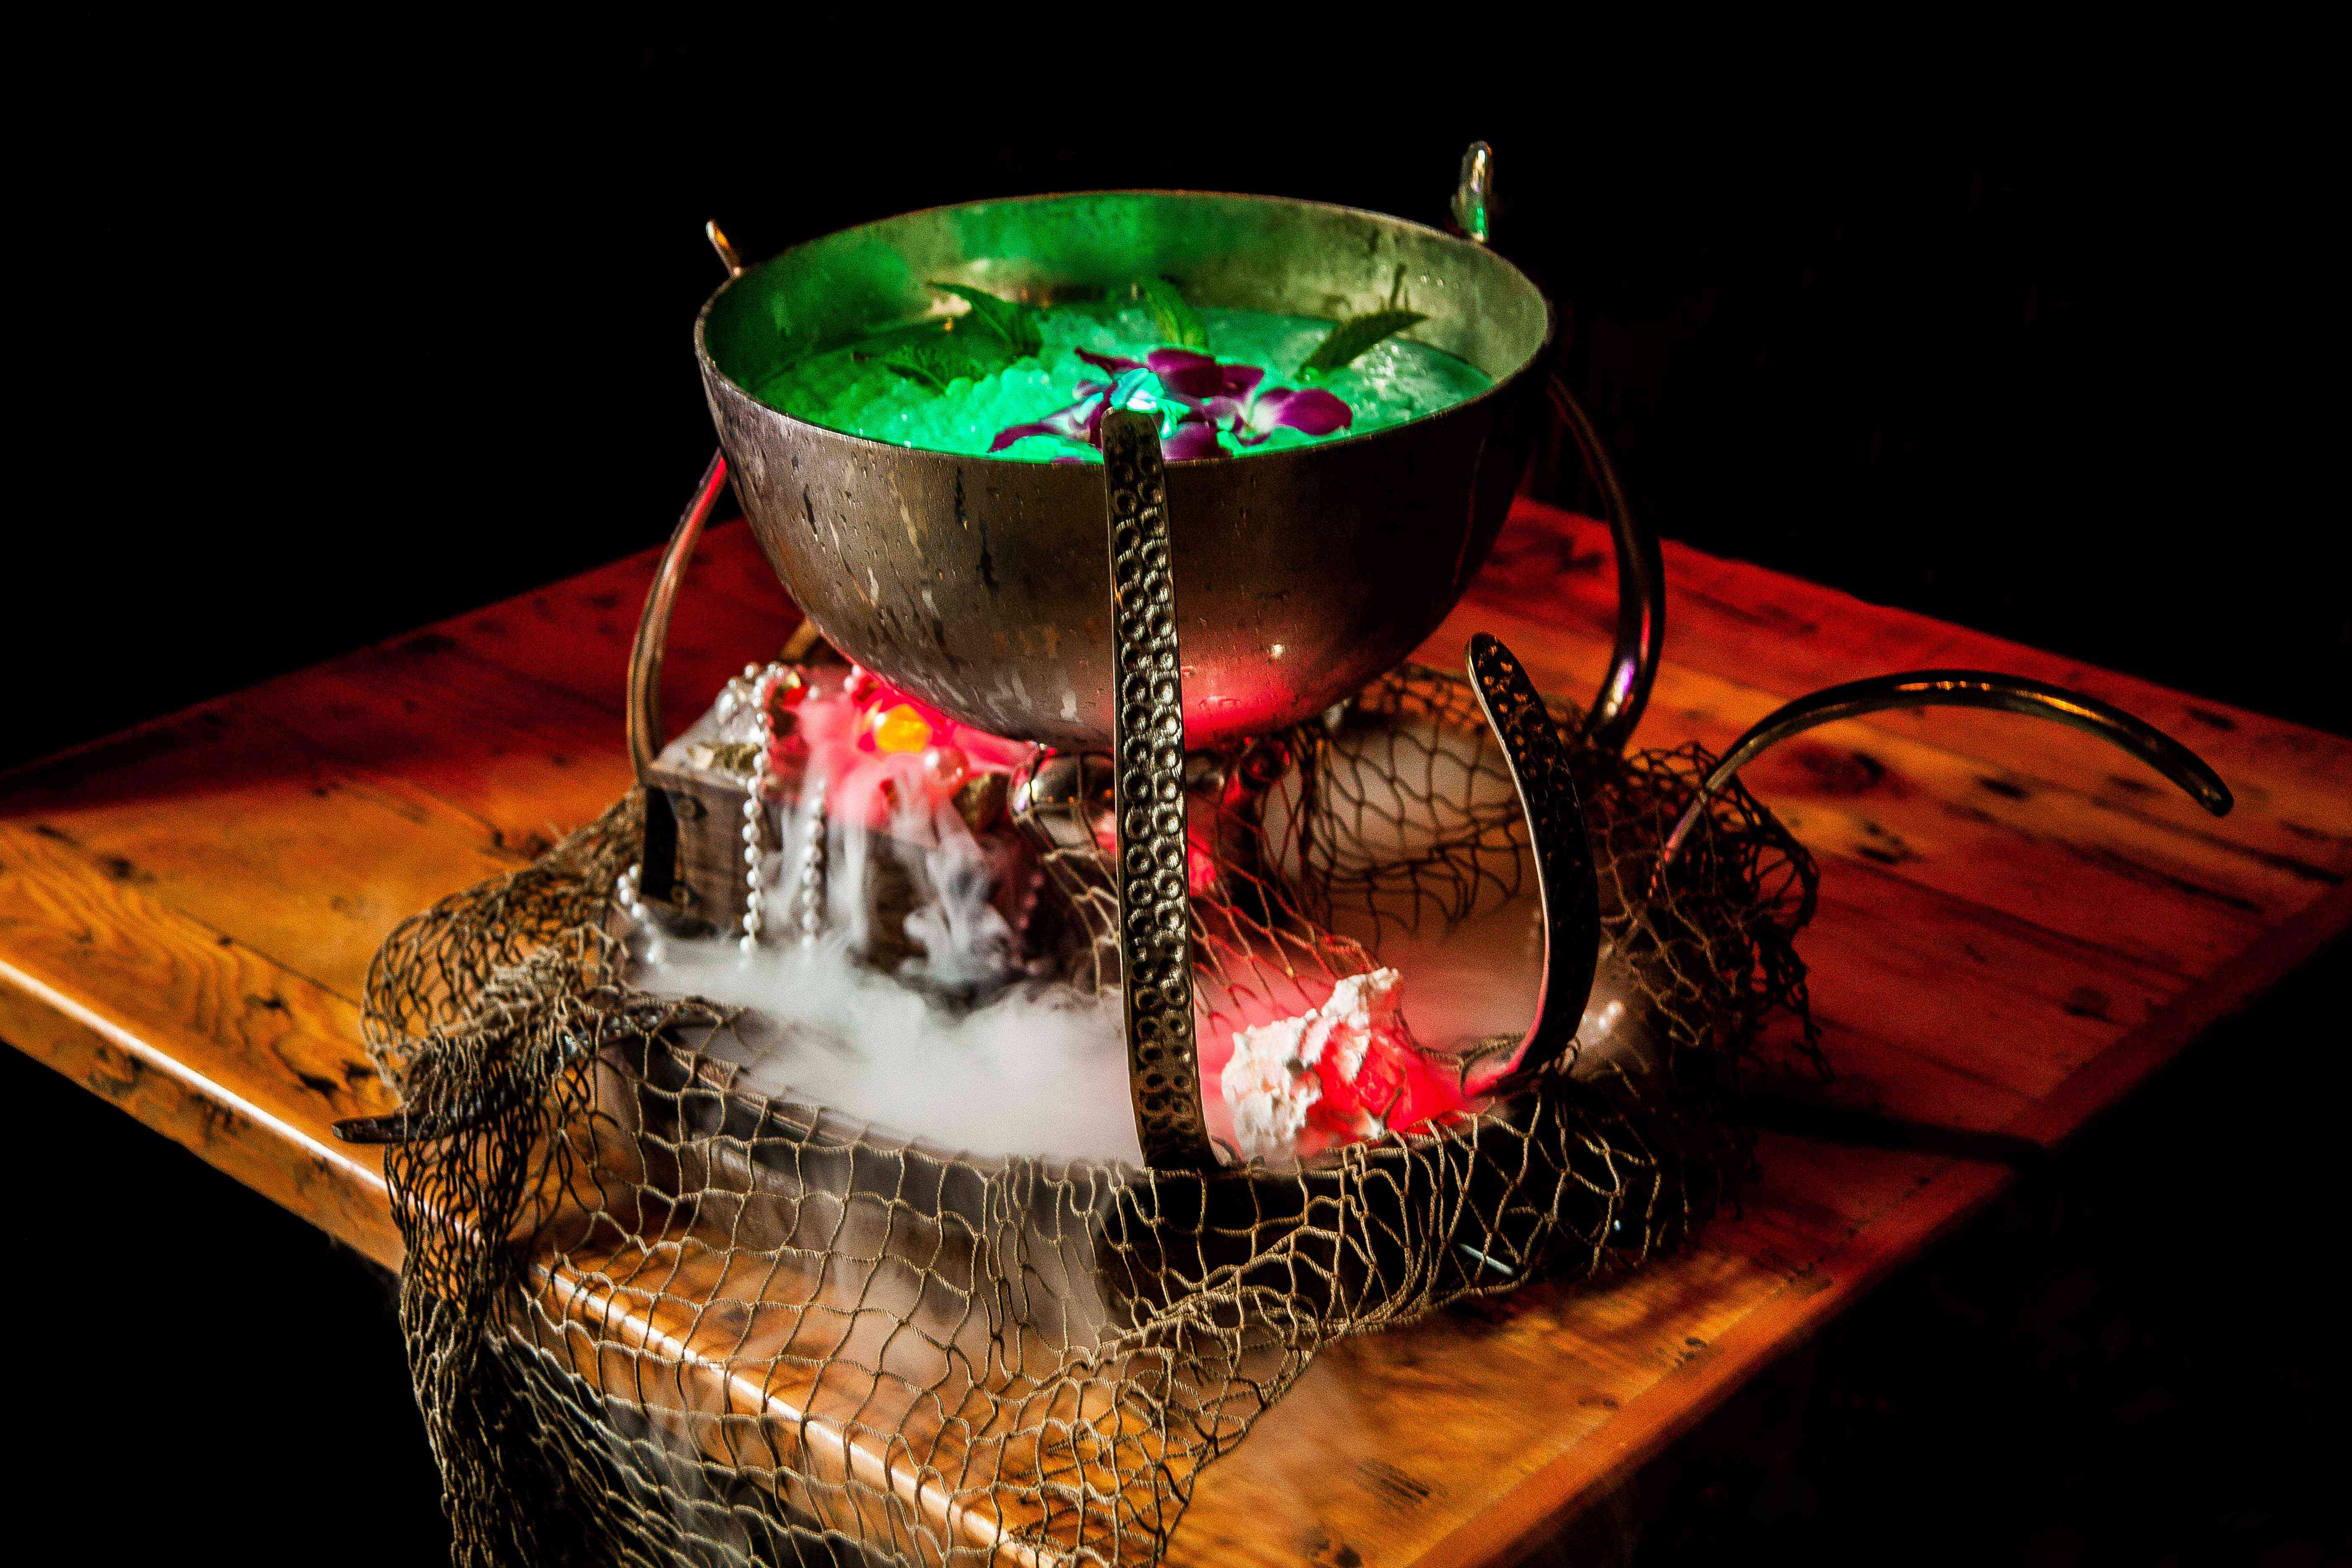 Cauldron filled with ice and a green drink with smoke coming from underneath it